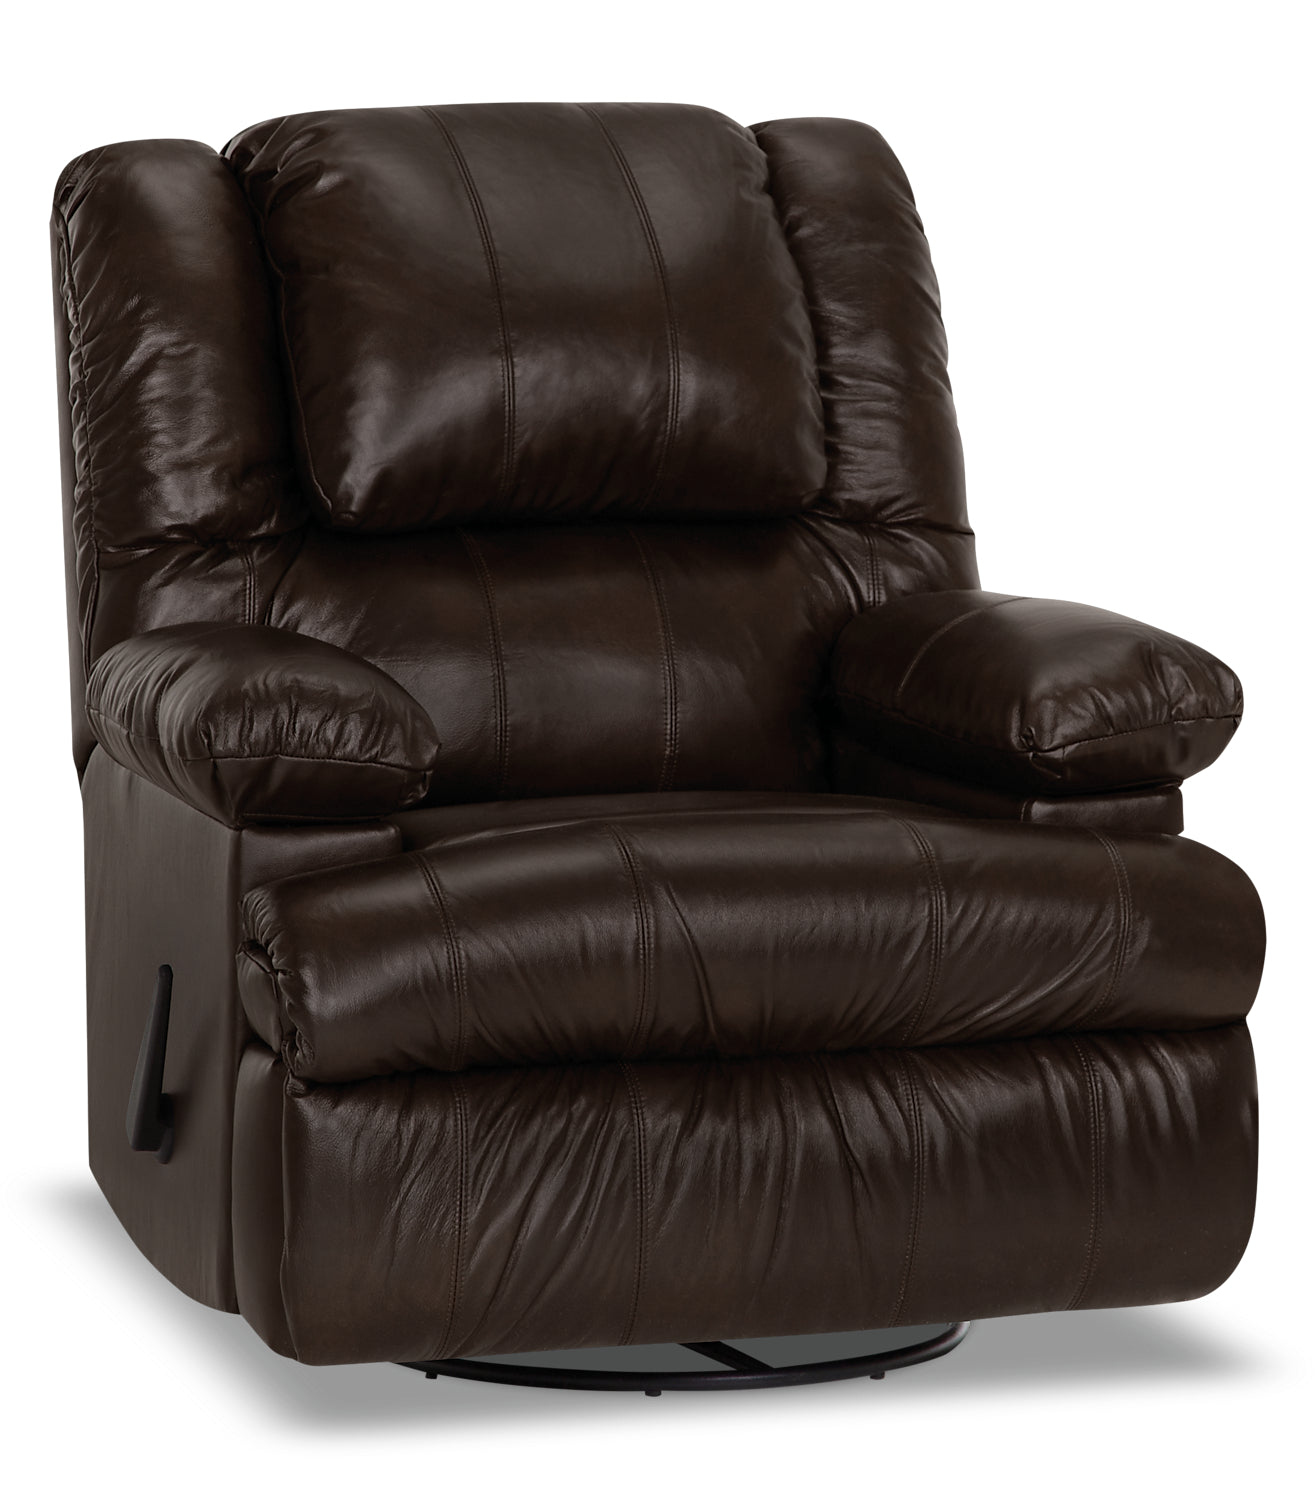 Designed2b 5598 genuine leather swivel recliner with storage arms columbus chocolatefauteuil pivotant inclinable 5598 design à mon image cuir accoudoirs